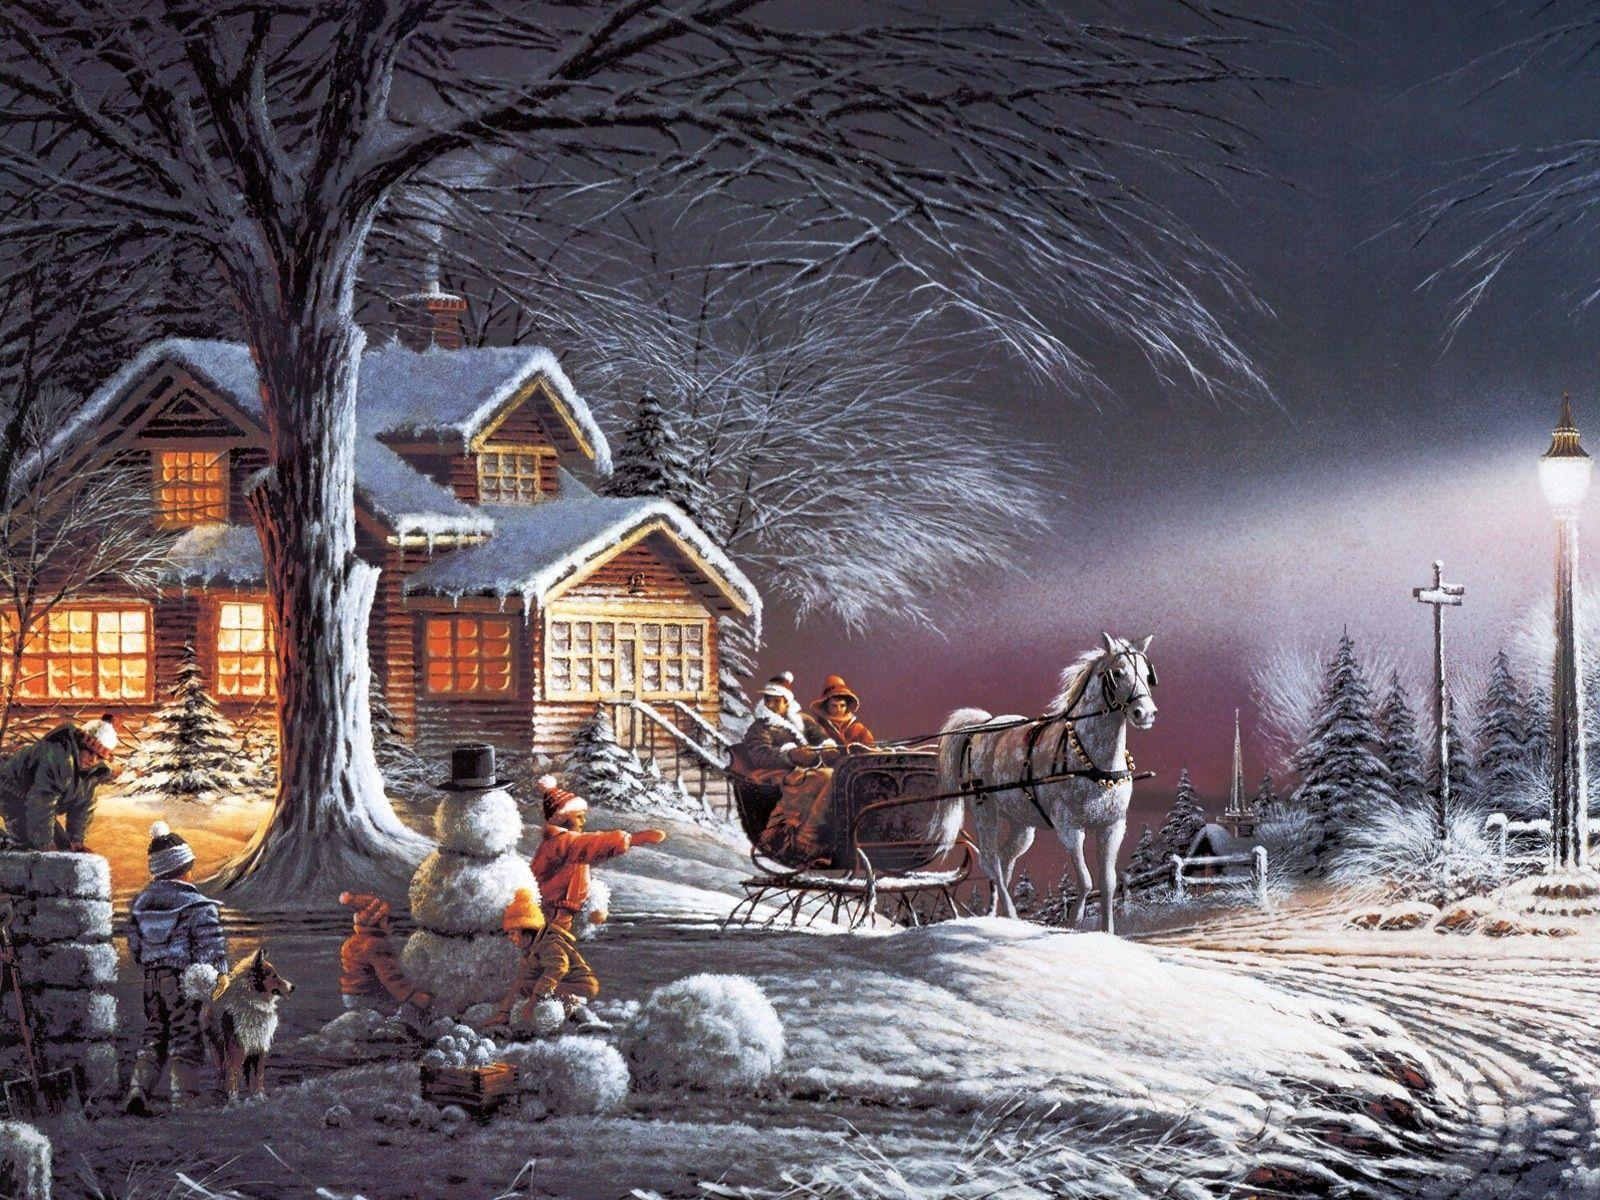 3d winter scenes wallpaper - photo #34